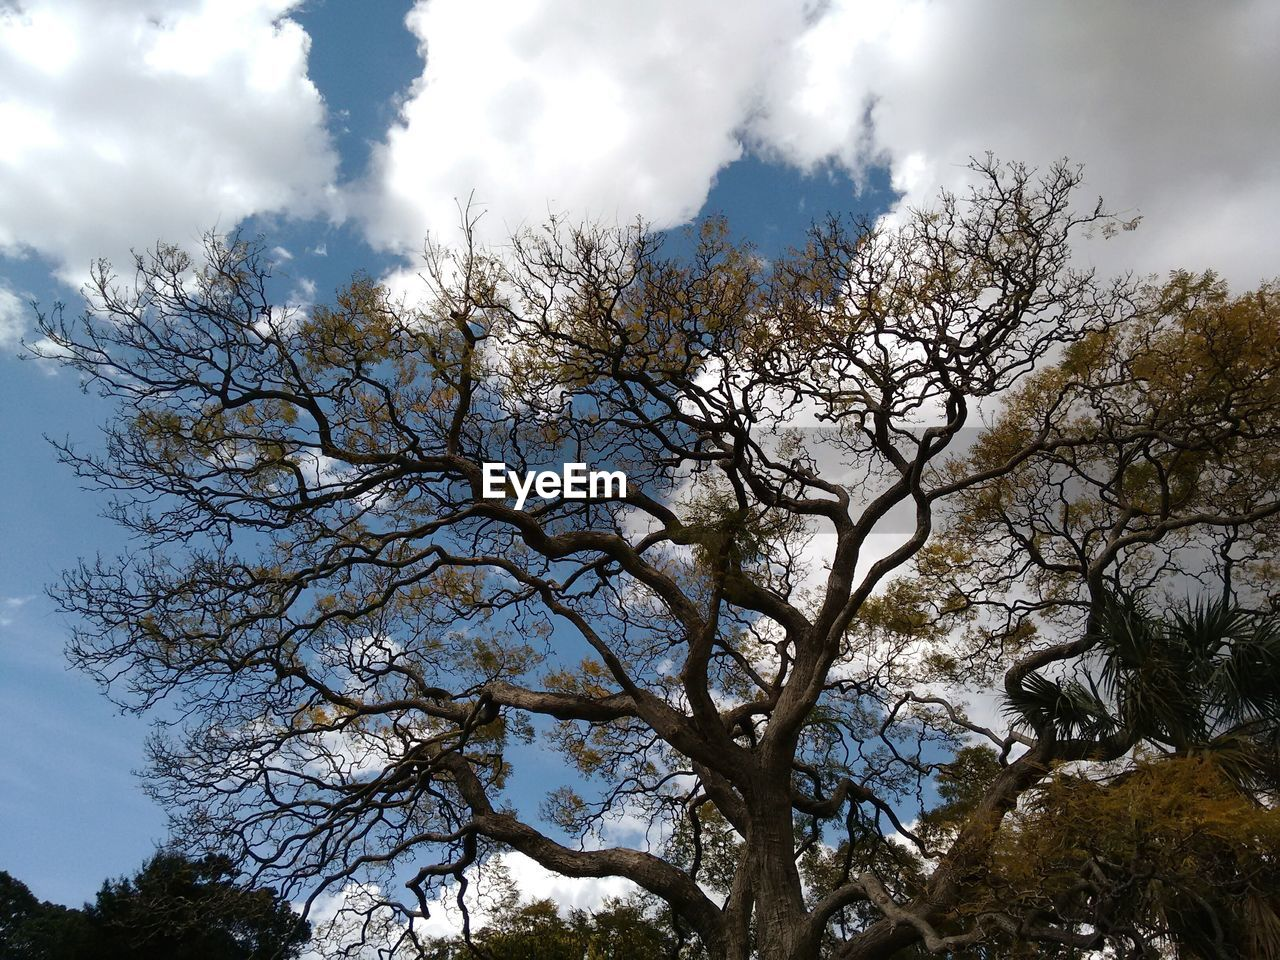 tree, sky, low angle view, cloud - sky, nature, growth, day, no people, beauty in nature, branch, outdoors